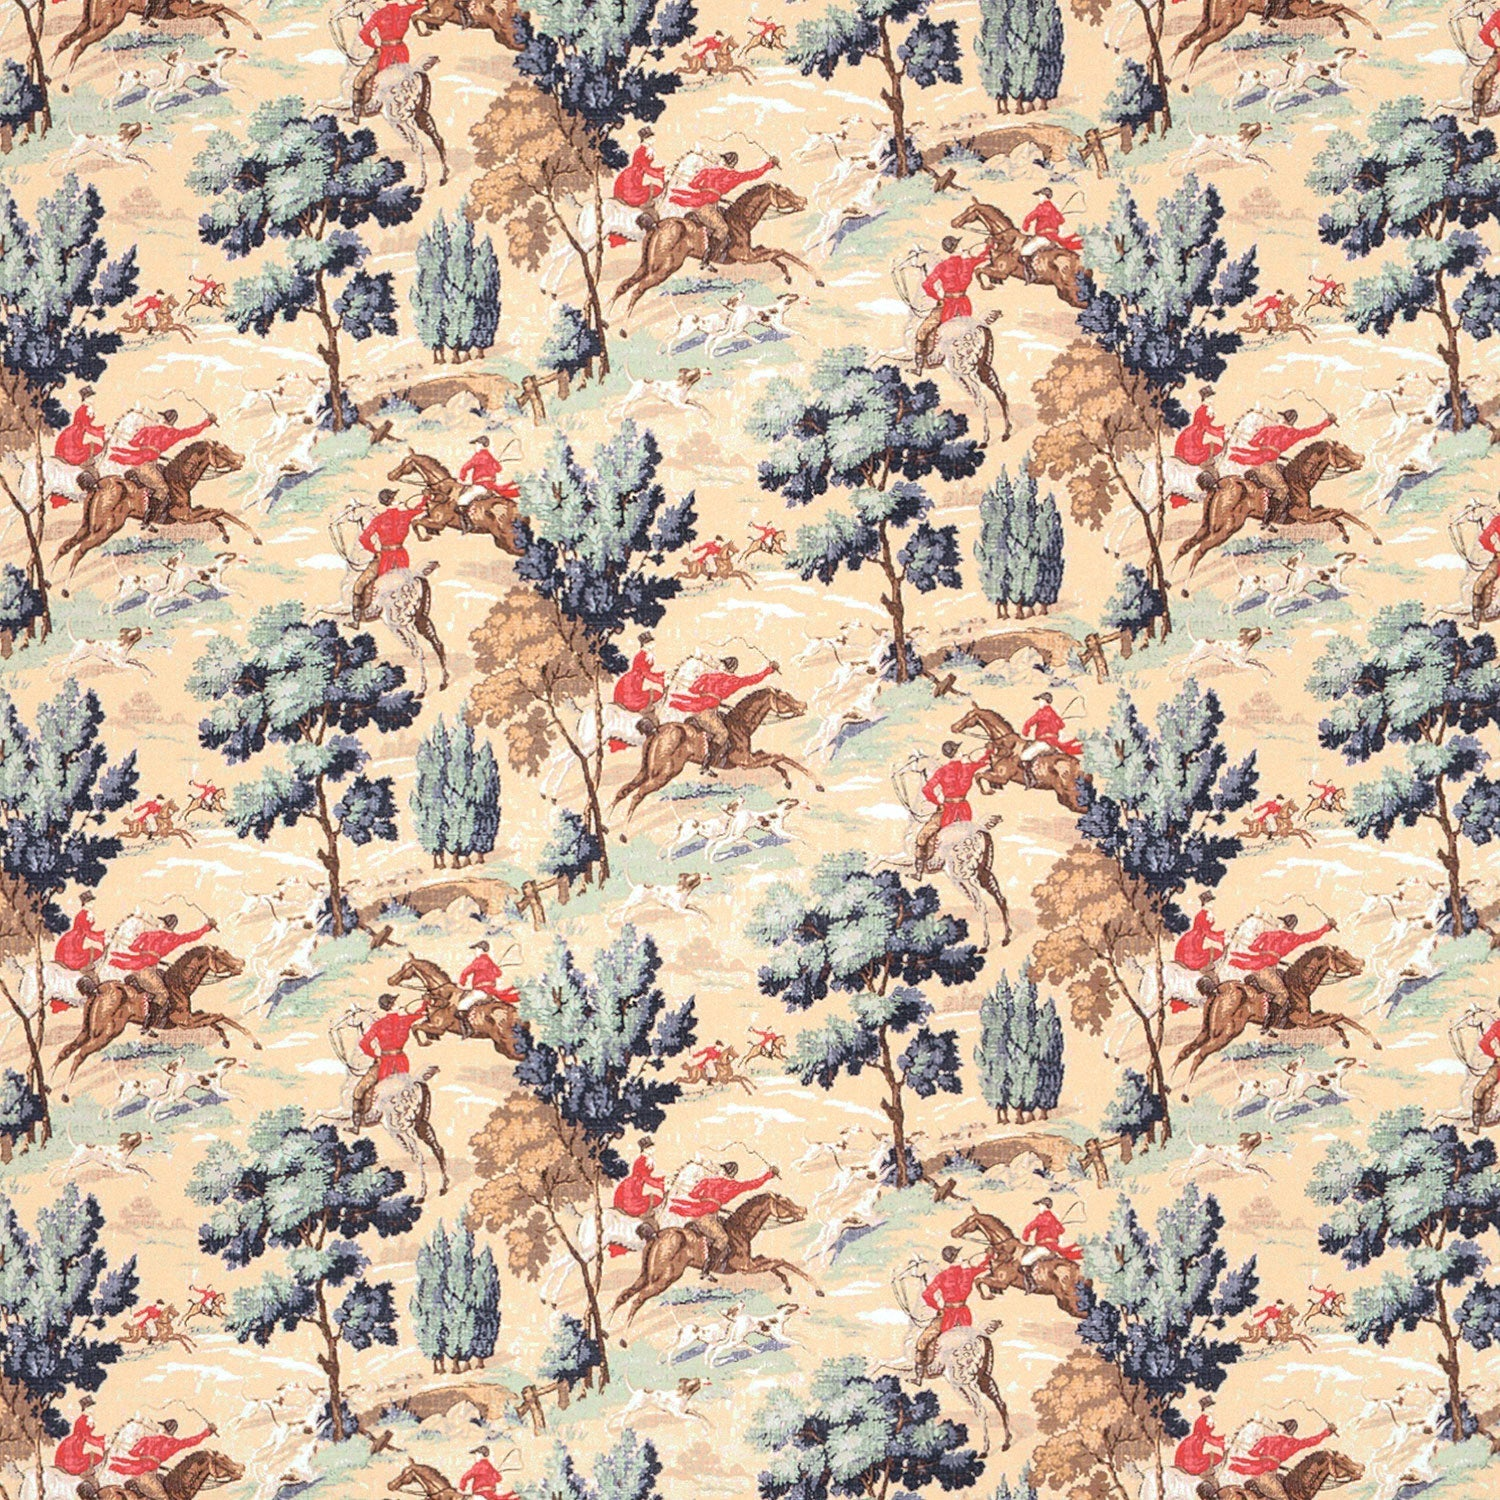 Cotton velvet suitable for upholstery and curtains with hunting scene design. Featuring huntsmen on horses and dogs in a forest scene.